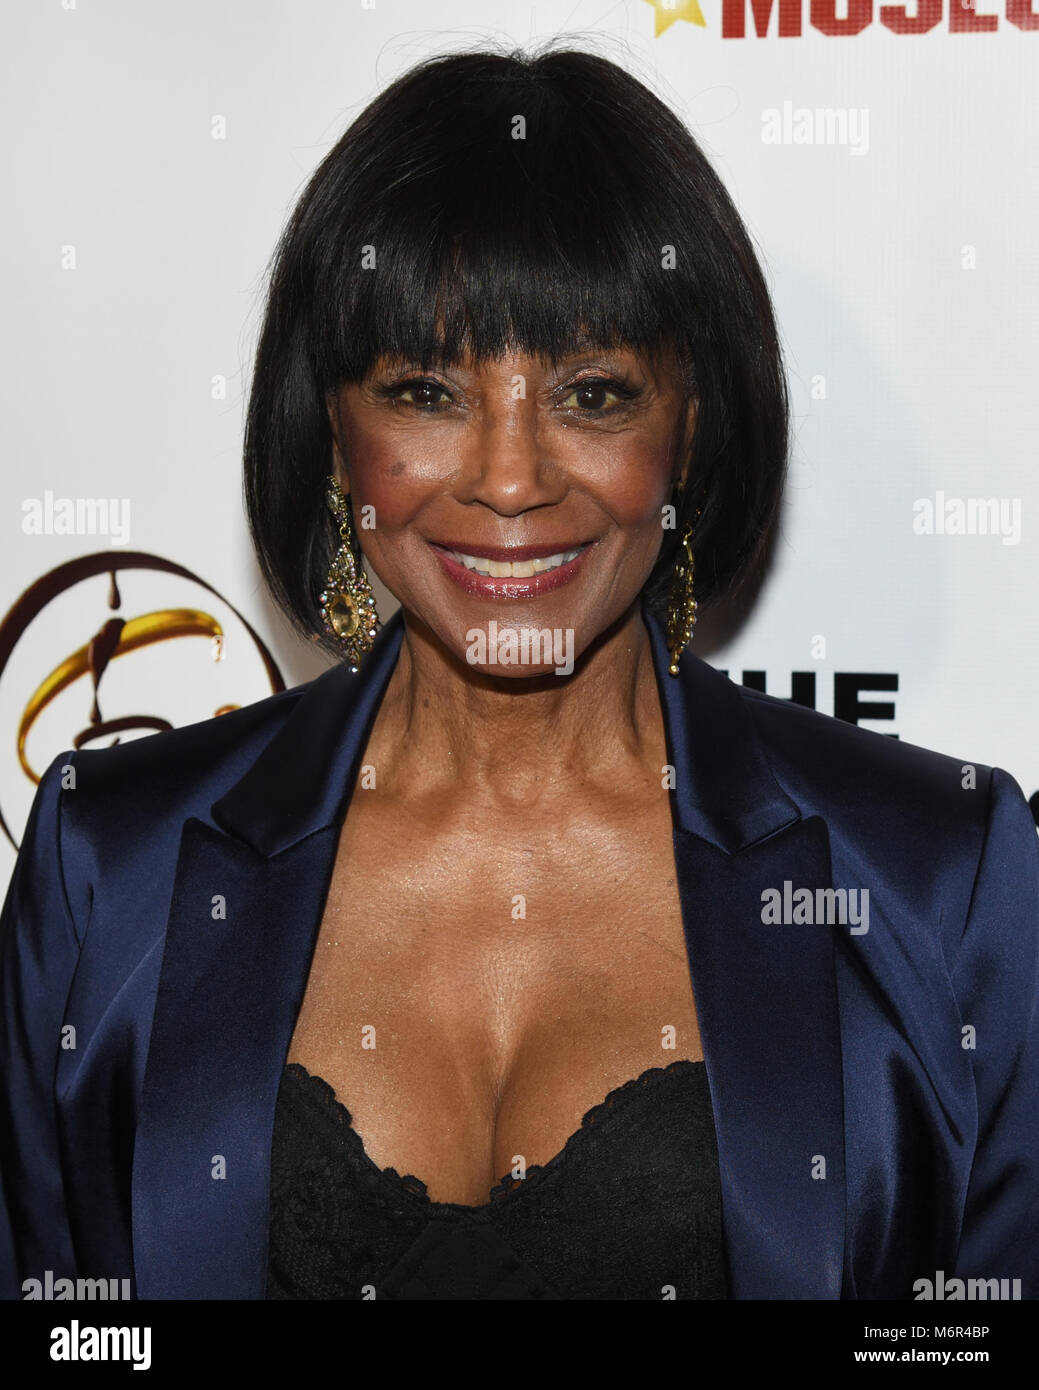 Leaked Margaret Avery naked photo 2017